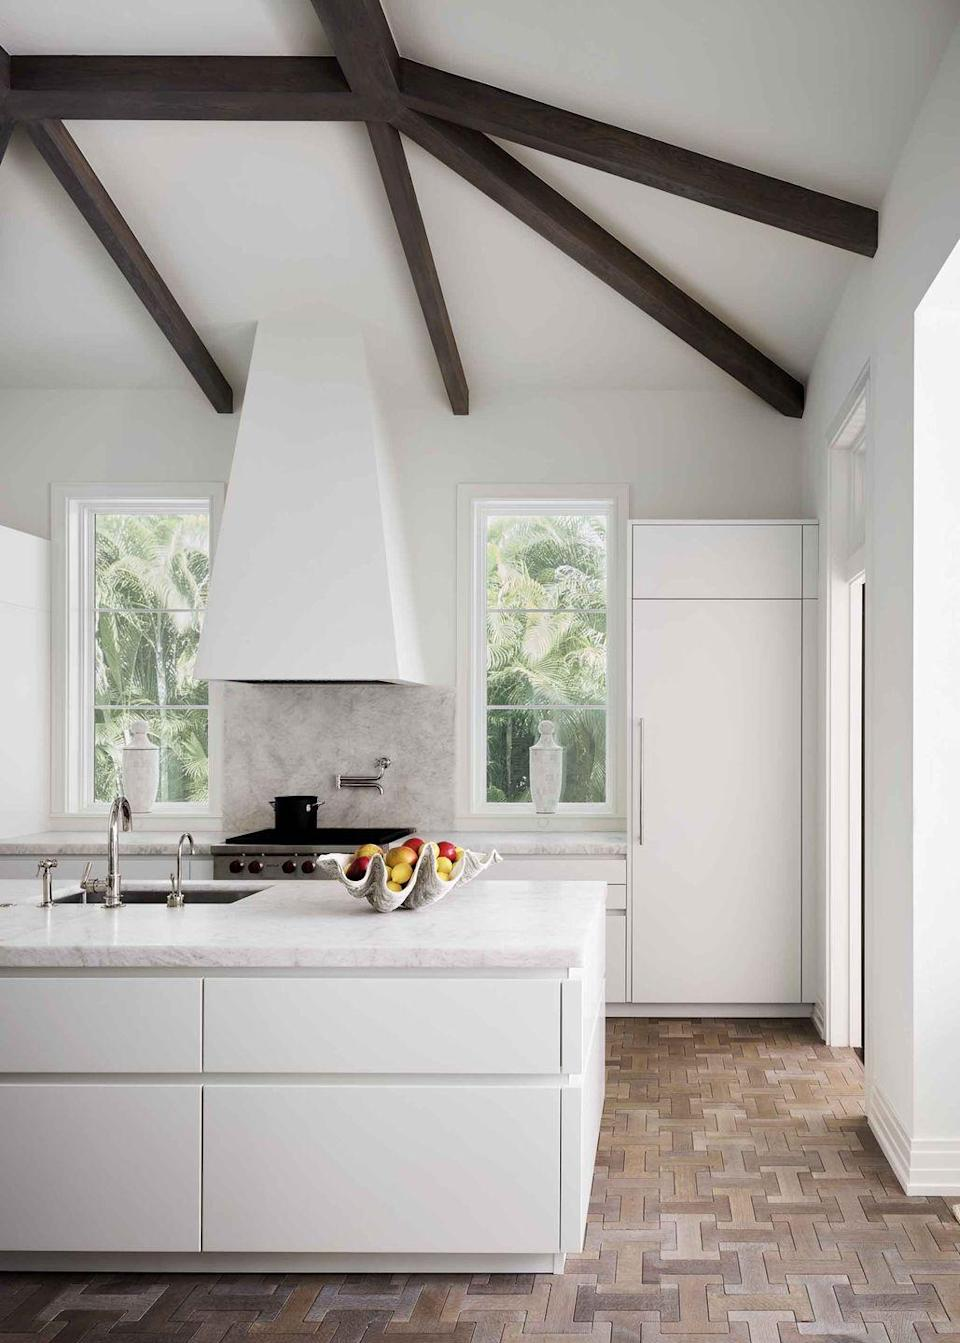 """<p>This serene foundation for this white kitchen in a <a href=""""https://www.veranda.com/home-decorators/a32166023/celerie-kemble-naples-florida-house-tour/"""" rel=""""nofollow noopener"""" target=""""_blank"""" data-ylk=""""slk:Naples, Florida, retreat"""" class=""""link rapid-noclick-resp"""">Naples, Florida, retreat</a> designed by <a href=""""http://www.kembleinteriors.com/"""" rel=""""nofollow noopener"""" target=""""_blank"""" data-ylk=""""slk:Celerie Kemble"""" class=""""link rapid-noclick-resp"""">Celerie Kemble</a> is its simple, unadorned cabinetry, which features drawer panels with no visible hardware. Dark-stained beams and interlocking white oak floor tiles from <a href=""""https://jamiebeckwithcollection.com/"""" rel=""""nofollow noopener"""" target=""""_blank"""" data-ylk=""""slk:Jamie Beckwith"""" class=""""link rapid-noclick-resp"""">Jamie Beckwith</a> add just a hint of rustic warmth.</p>"""